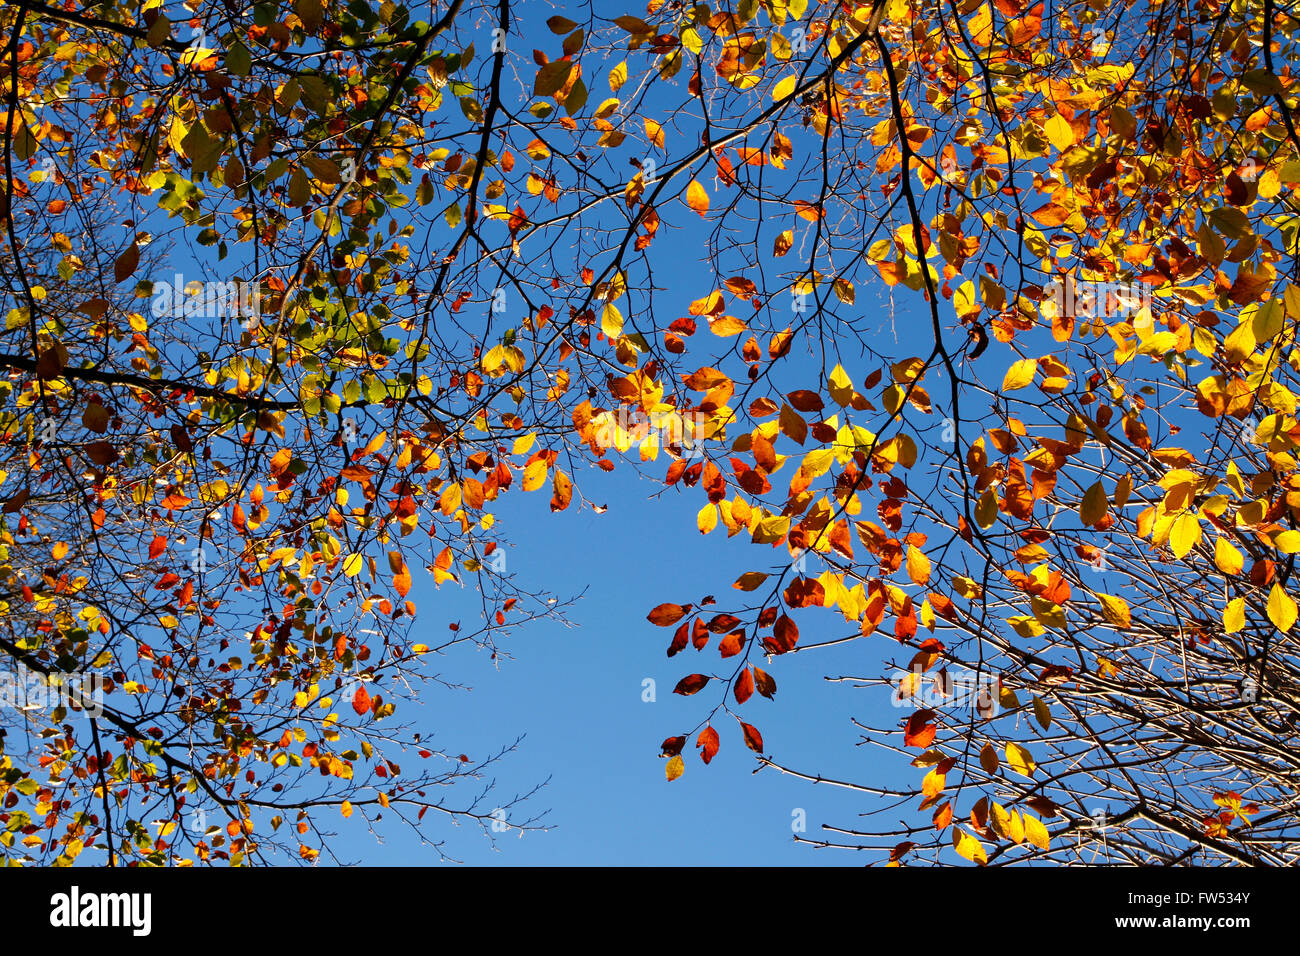 Orange and yellow autumn leaves against a blue sky - Stock Image